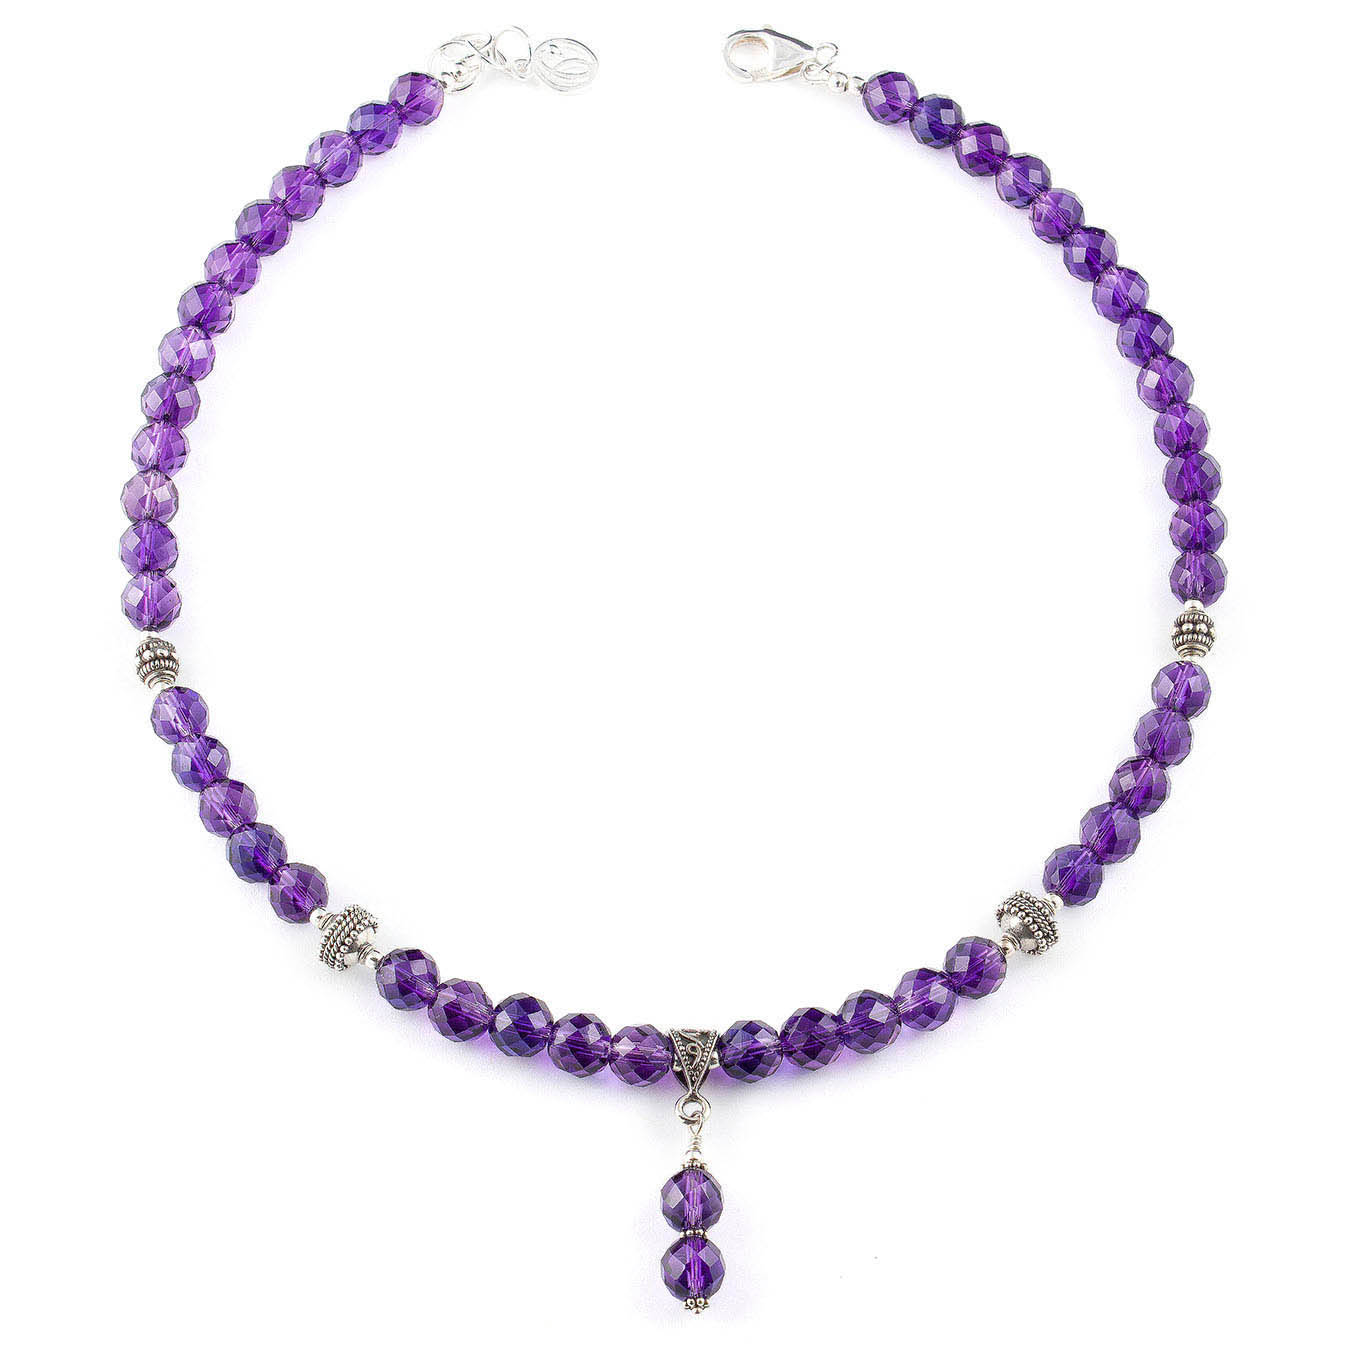 Pendant style necklace set made with faceted amethyst and bali silver